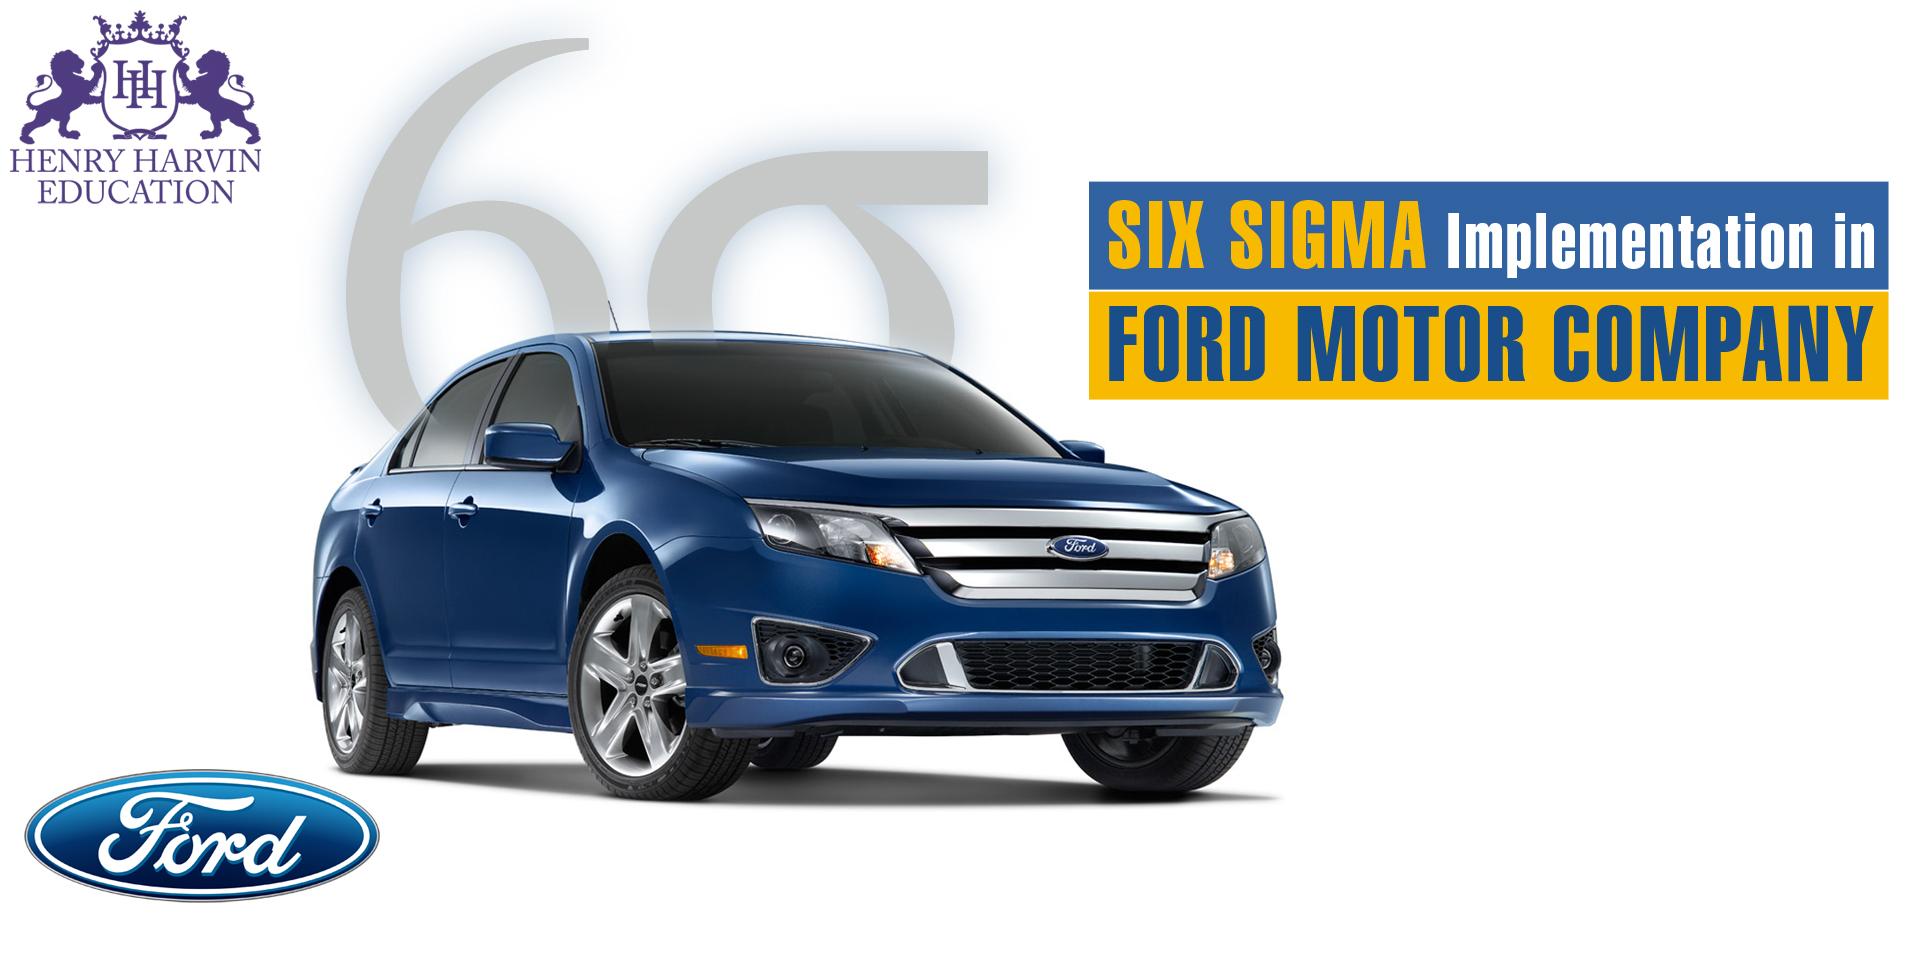 Six Sigma Implementation & its Benefits in Ford Motor Company